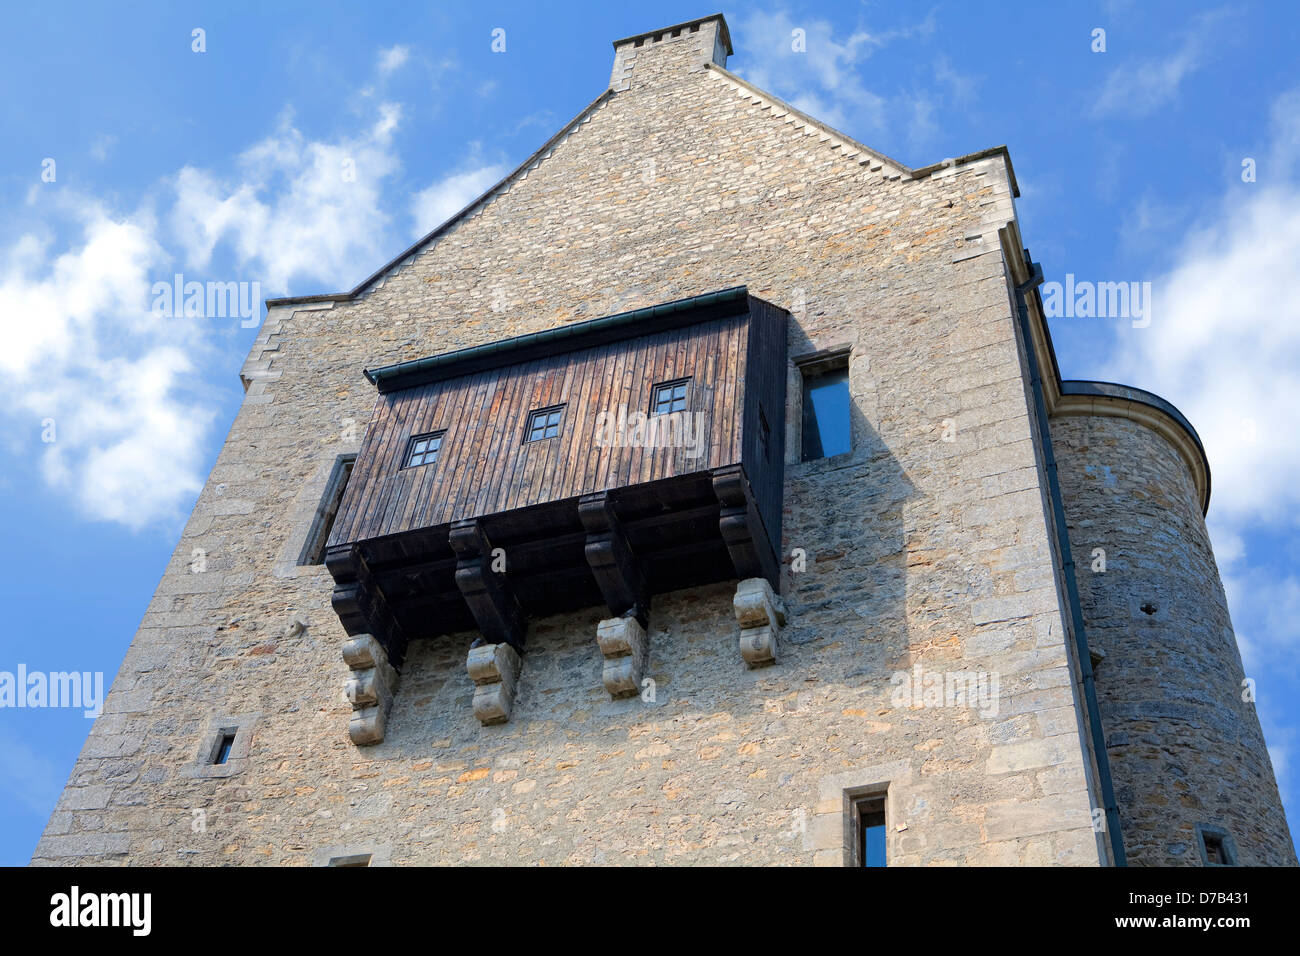 Burg Fels or Fiels Castle, Larochette, 11th century, Grand Duchy of Luxembourg, Europe, - Stock Image